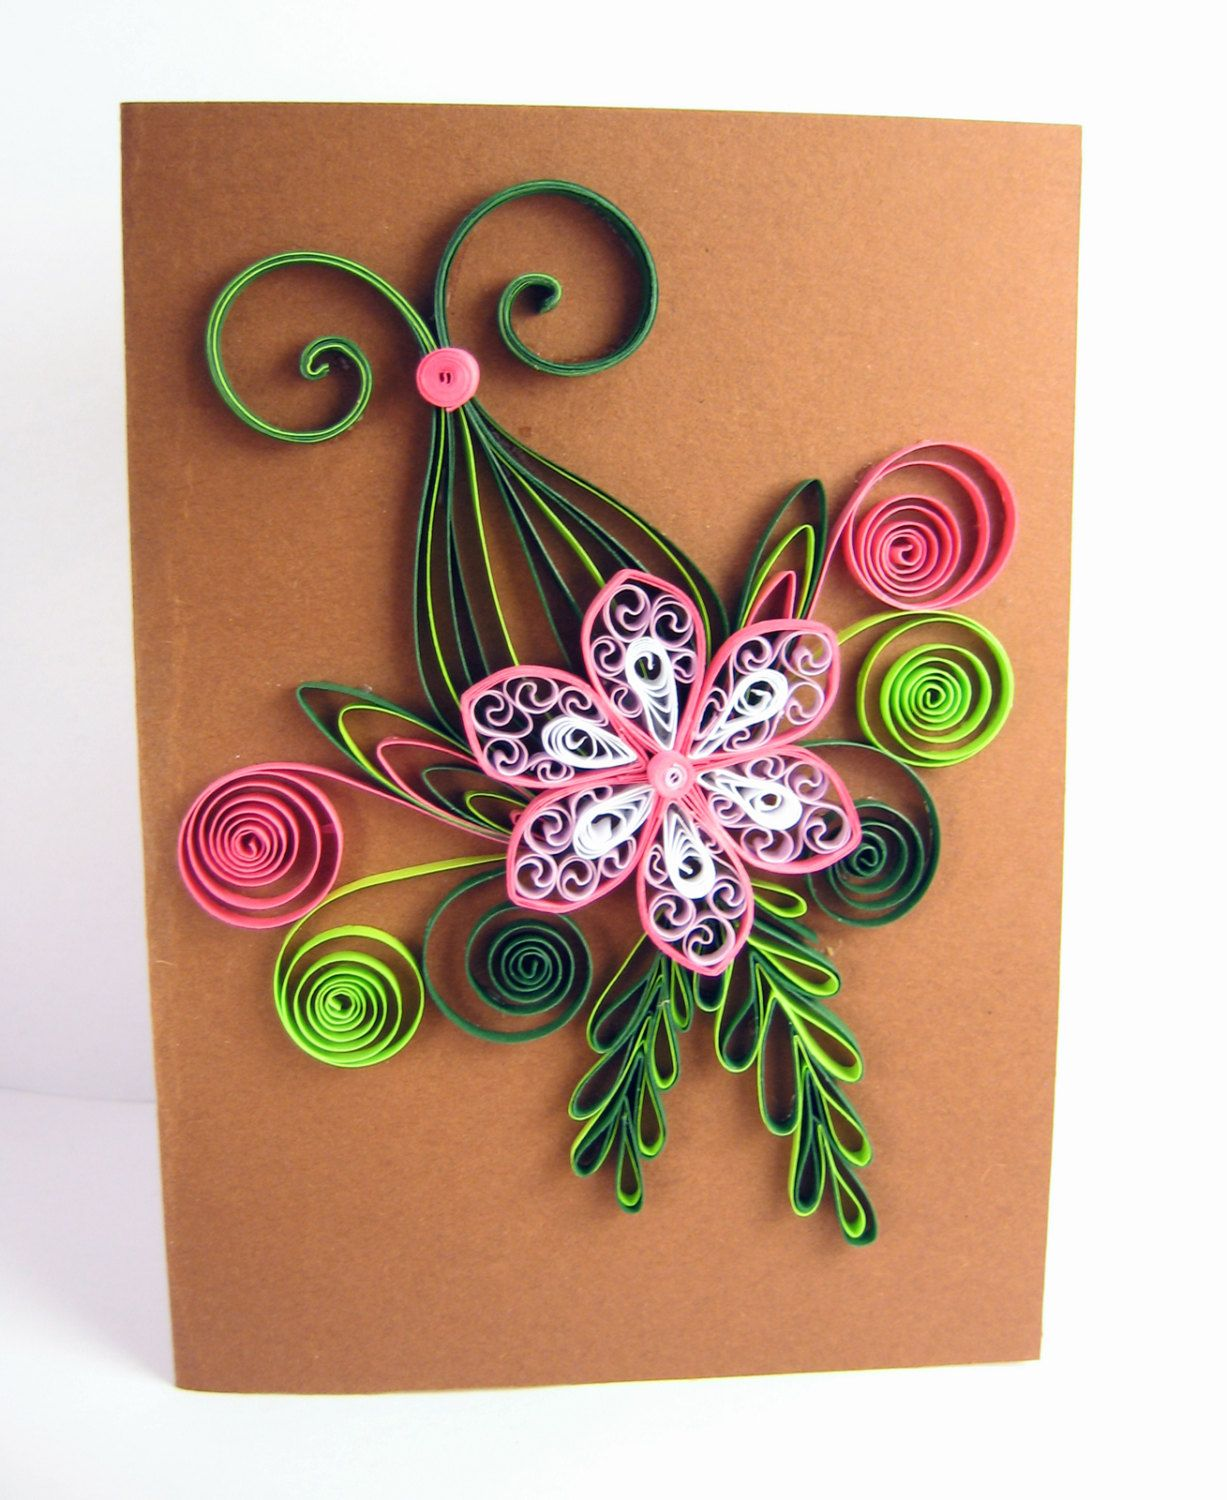 Quilled birthday card handmade paper greeting quilling floral for friend congratulations thank you also best advancdf images on pinterest and rh